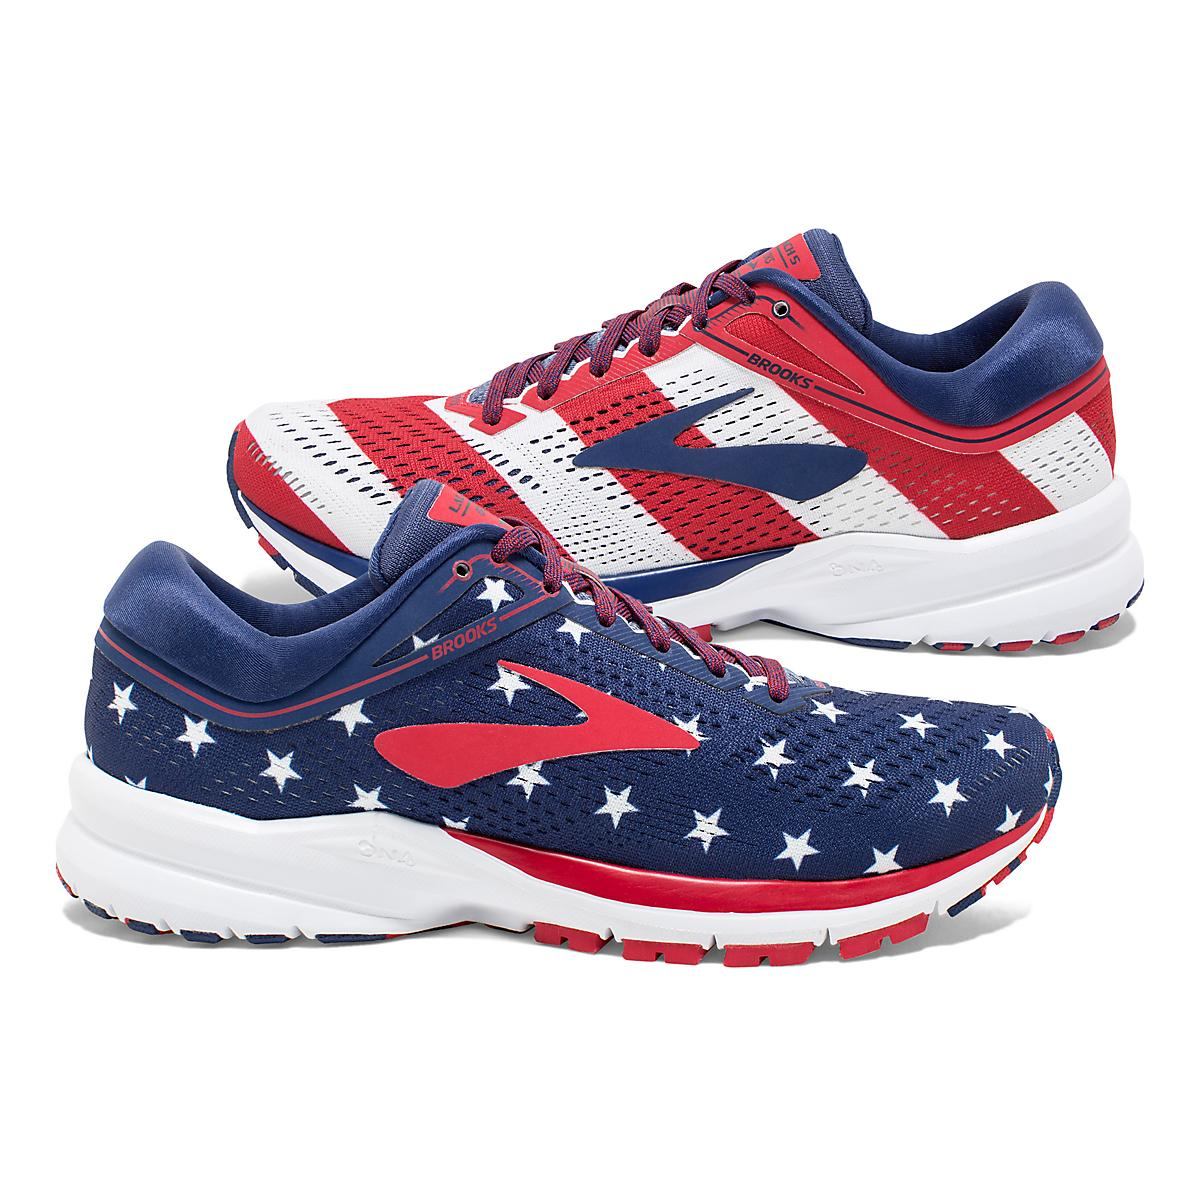 2981ab7e9cbc5 Mens Brooks Launch 5 Victory Running Shoe at Road Runner Sports